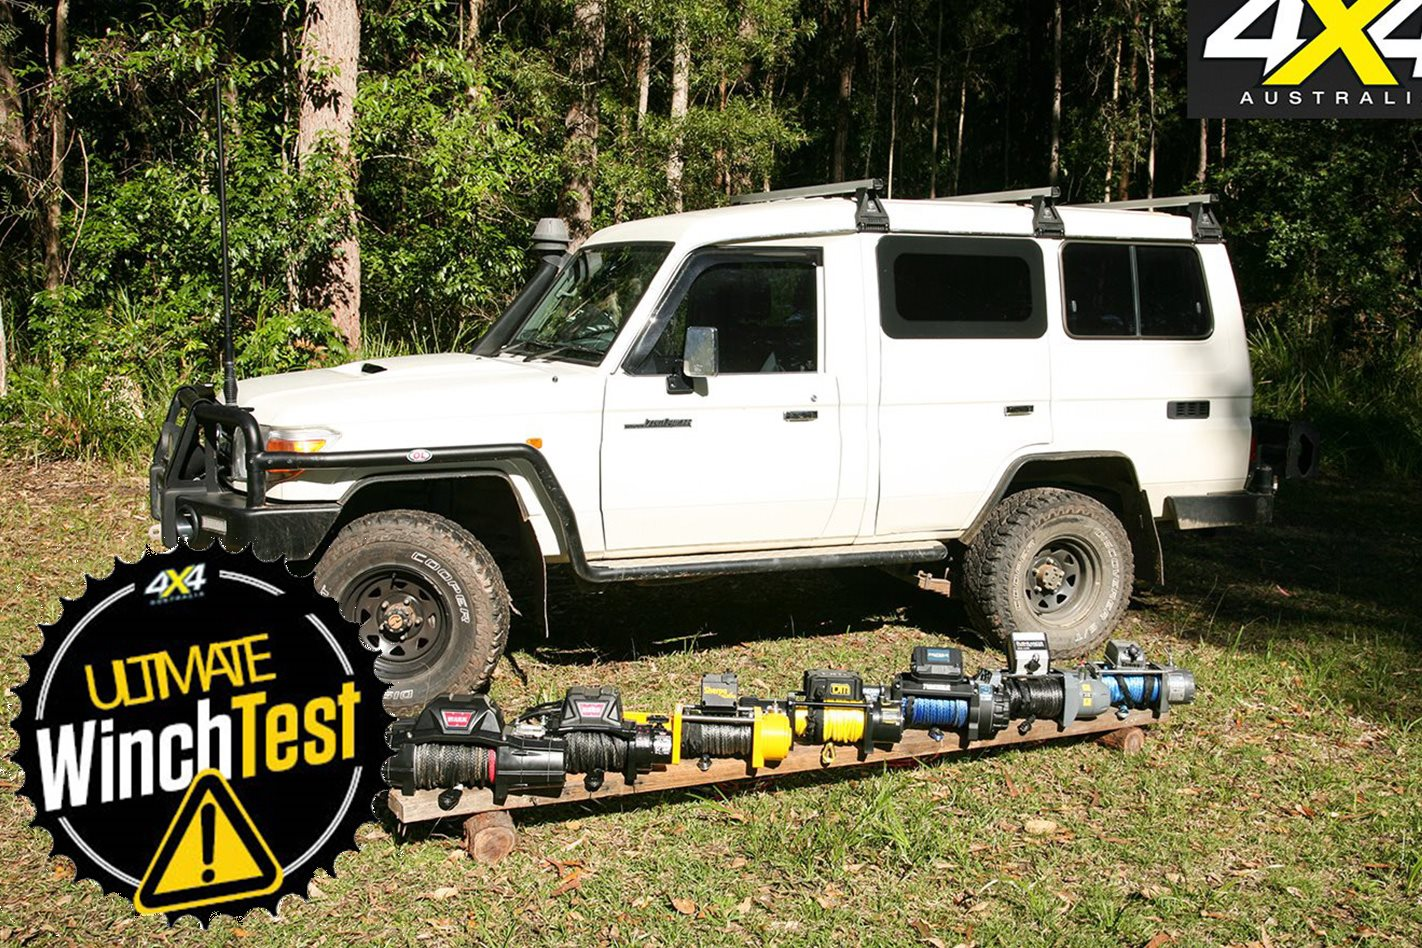 12-volt winch test: Results